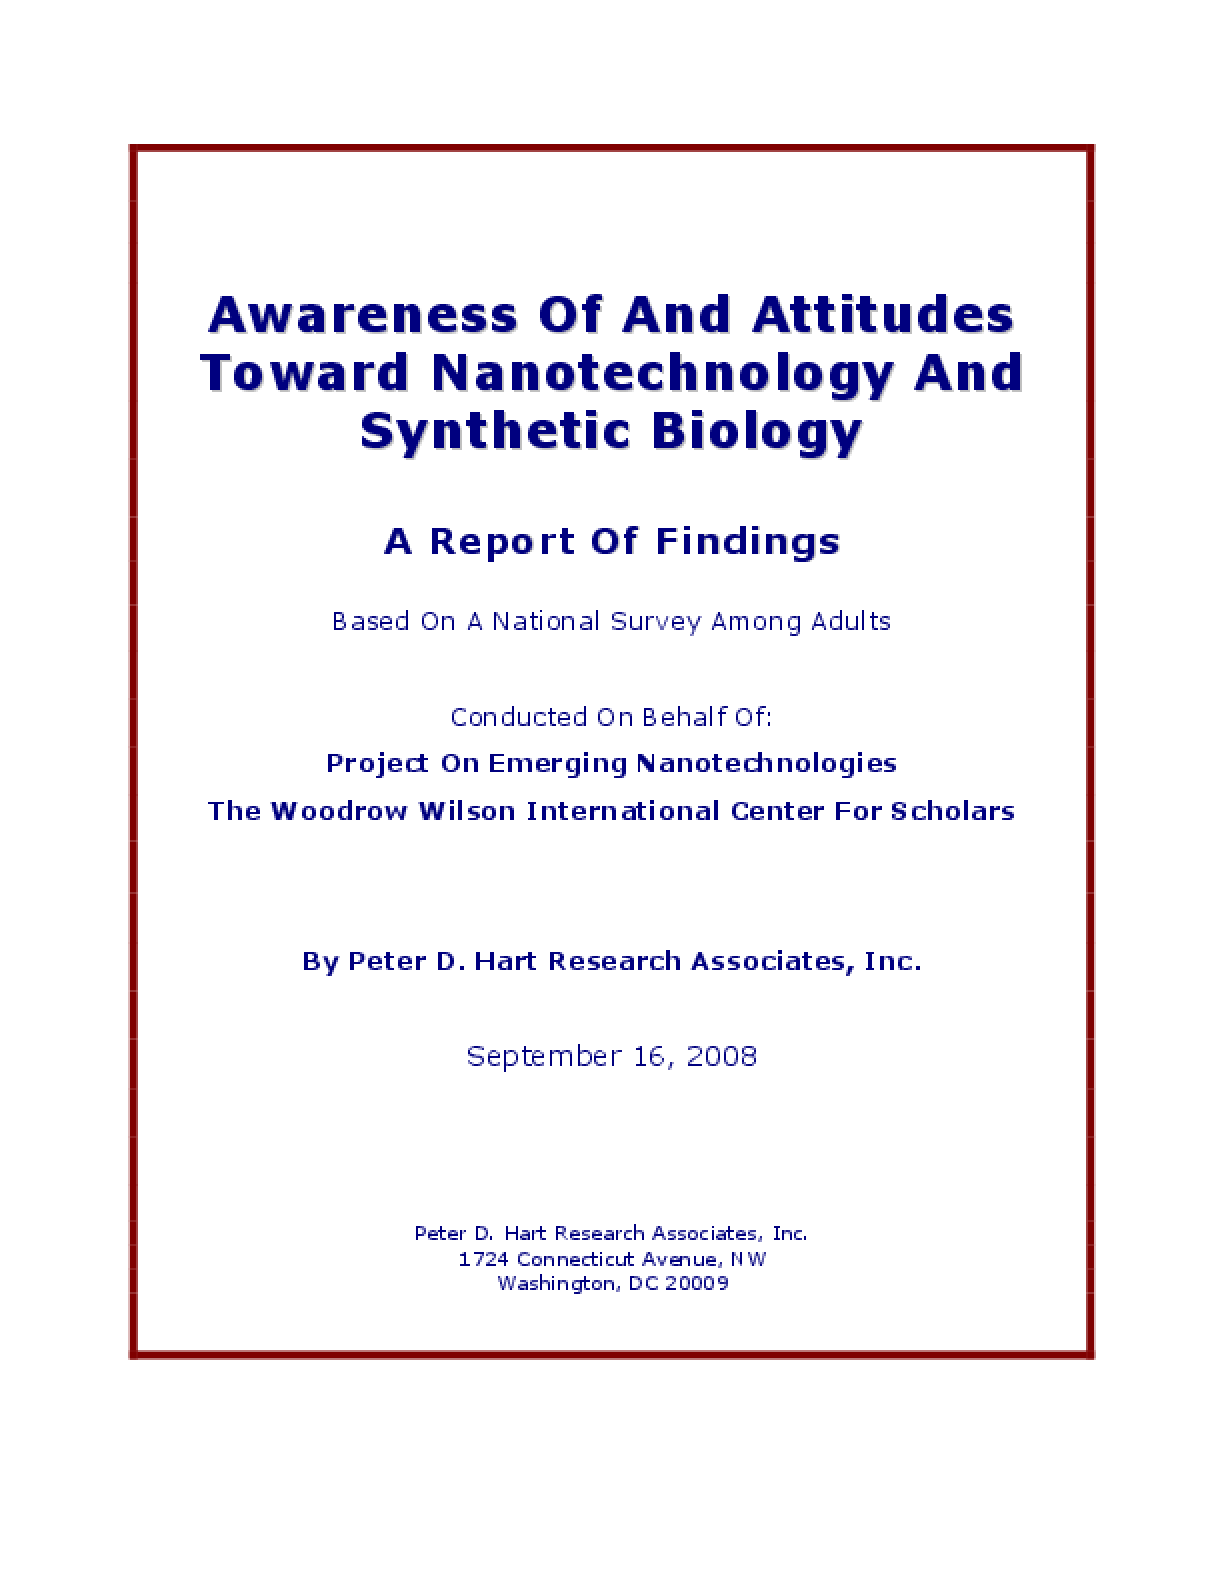 Awareness of and Attitudes Toward Nanotechnology and Synthetic Biology